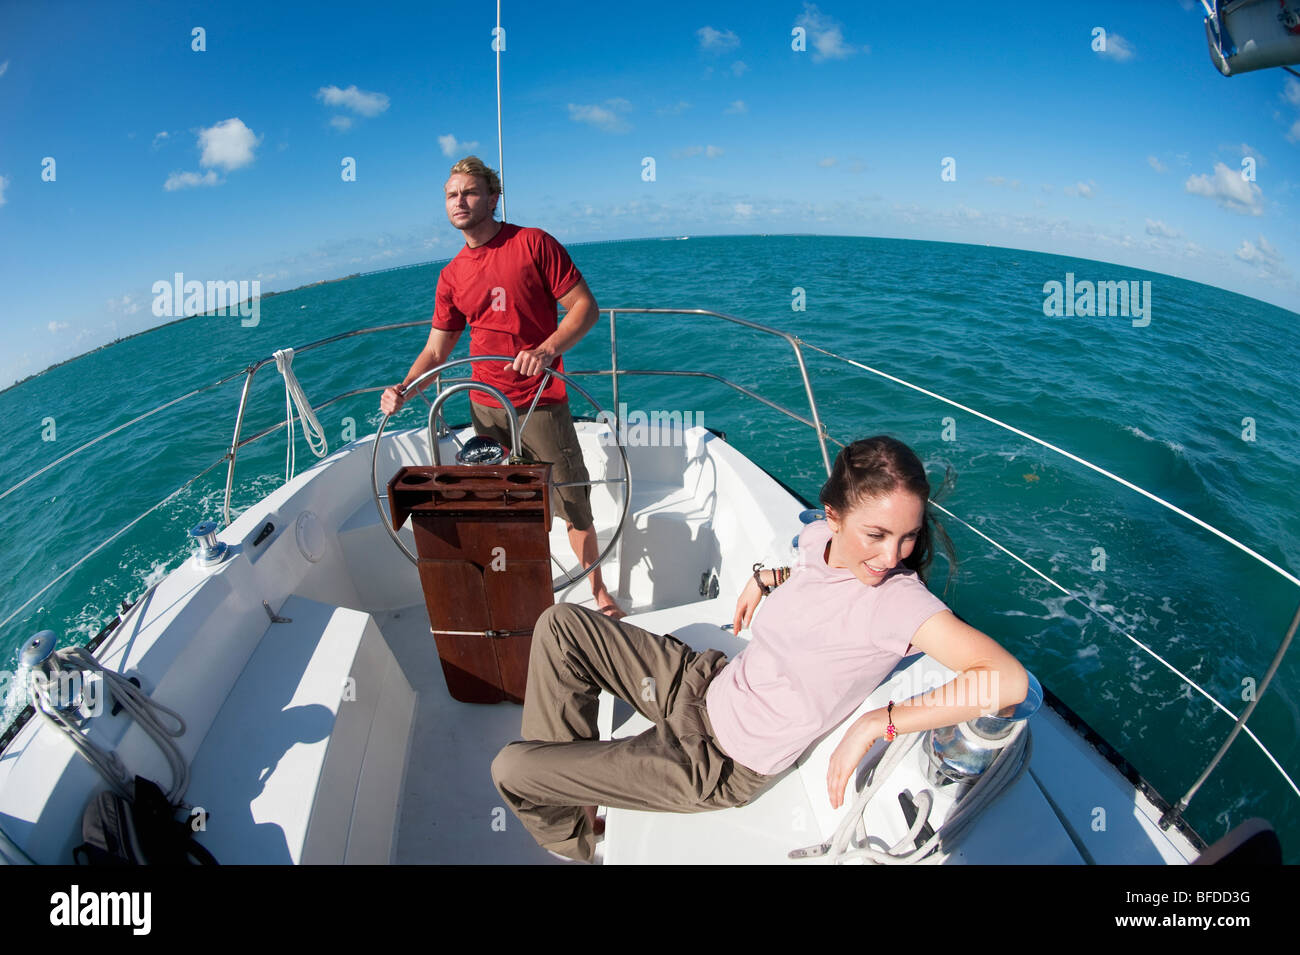 A man pilots a boat off of Florida while a woman sits nearby. - Stock Image